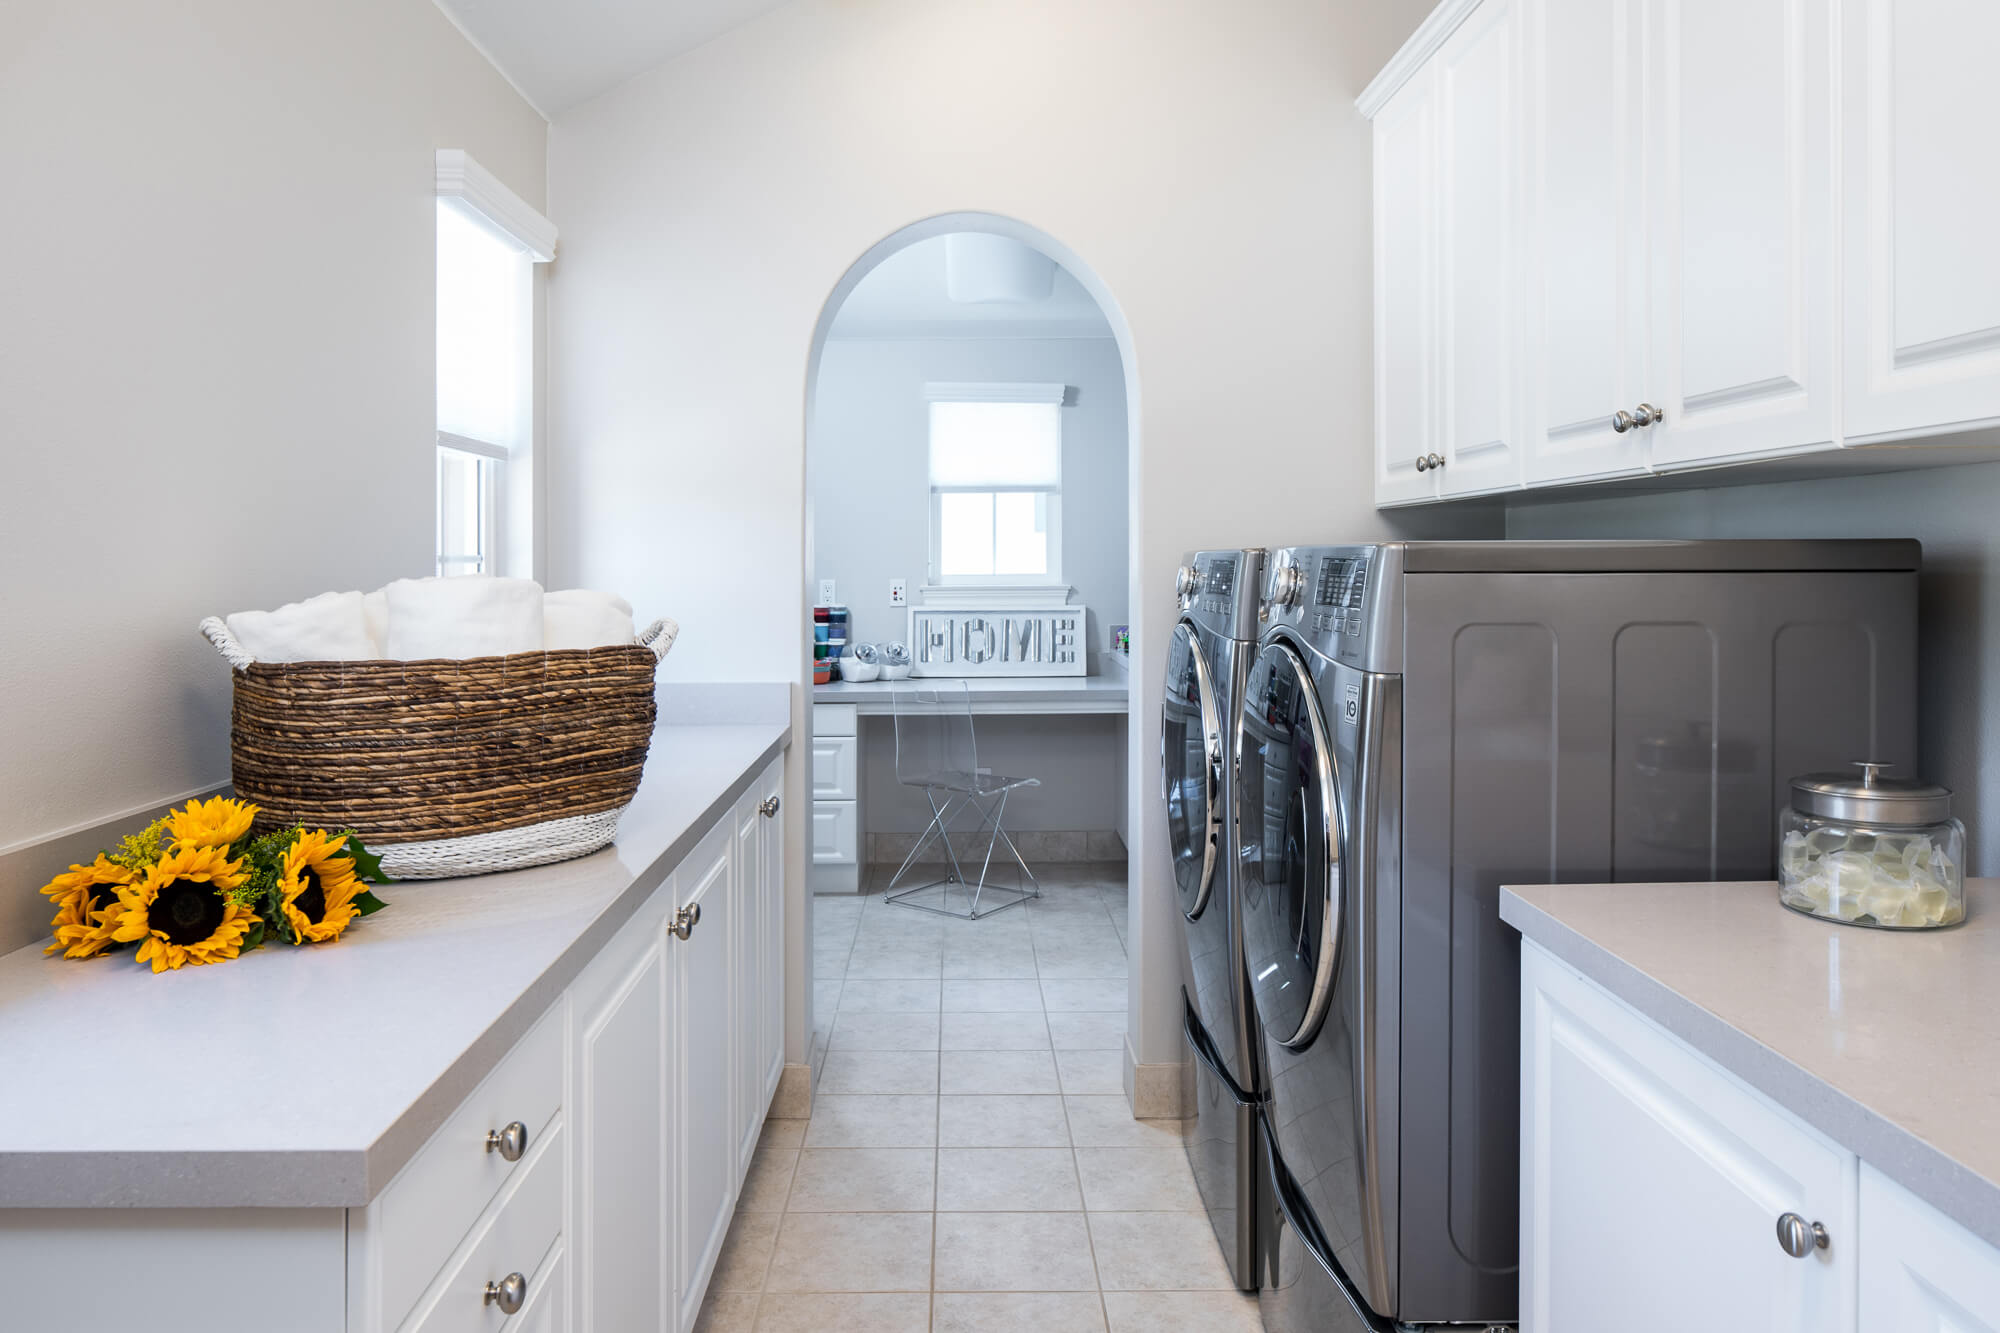 Laundry Room Remodel – Design Guide